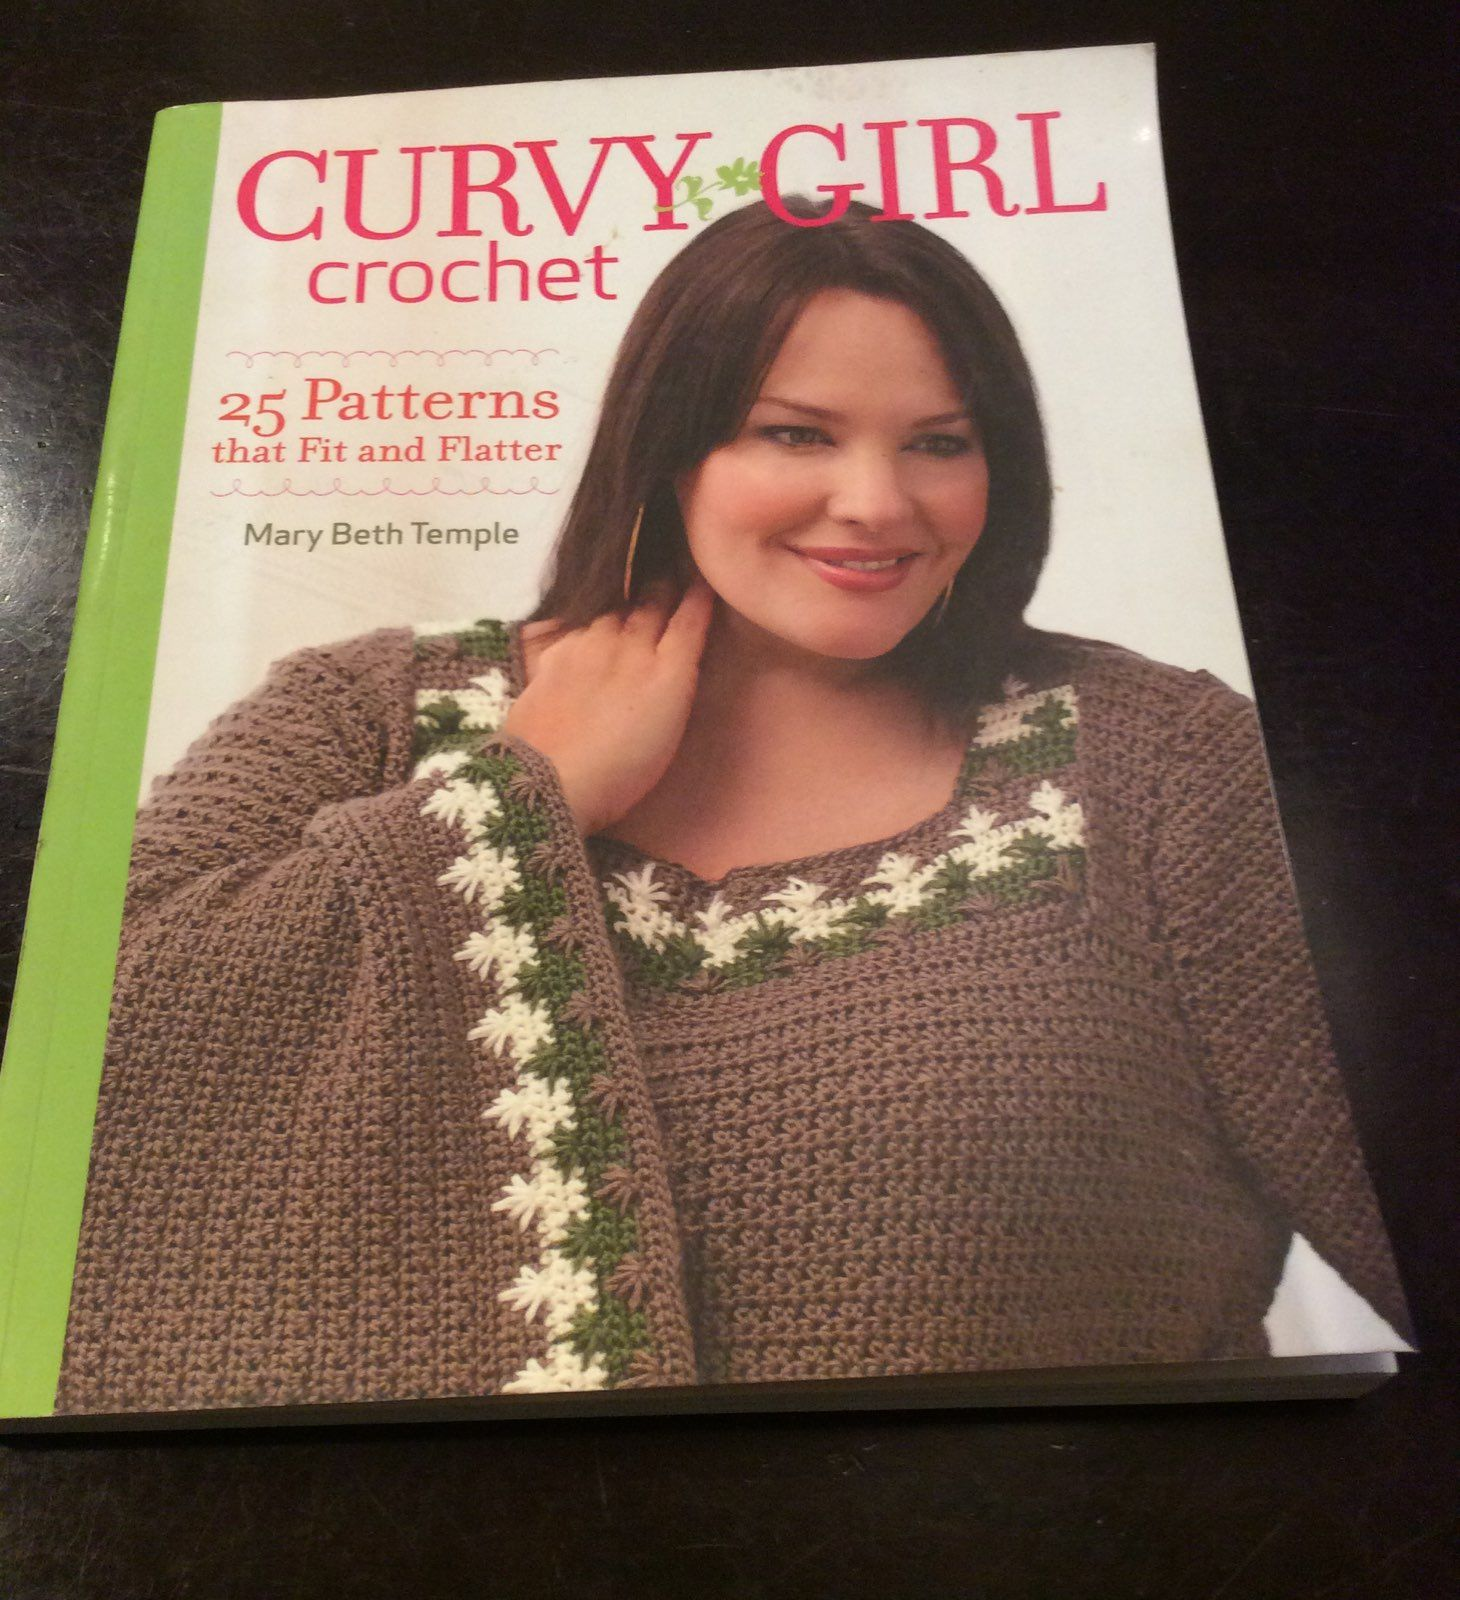 Crochet patterns book mercari buy sell things you love crochet patterns book bankloansurffo Image collections